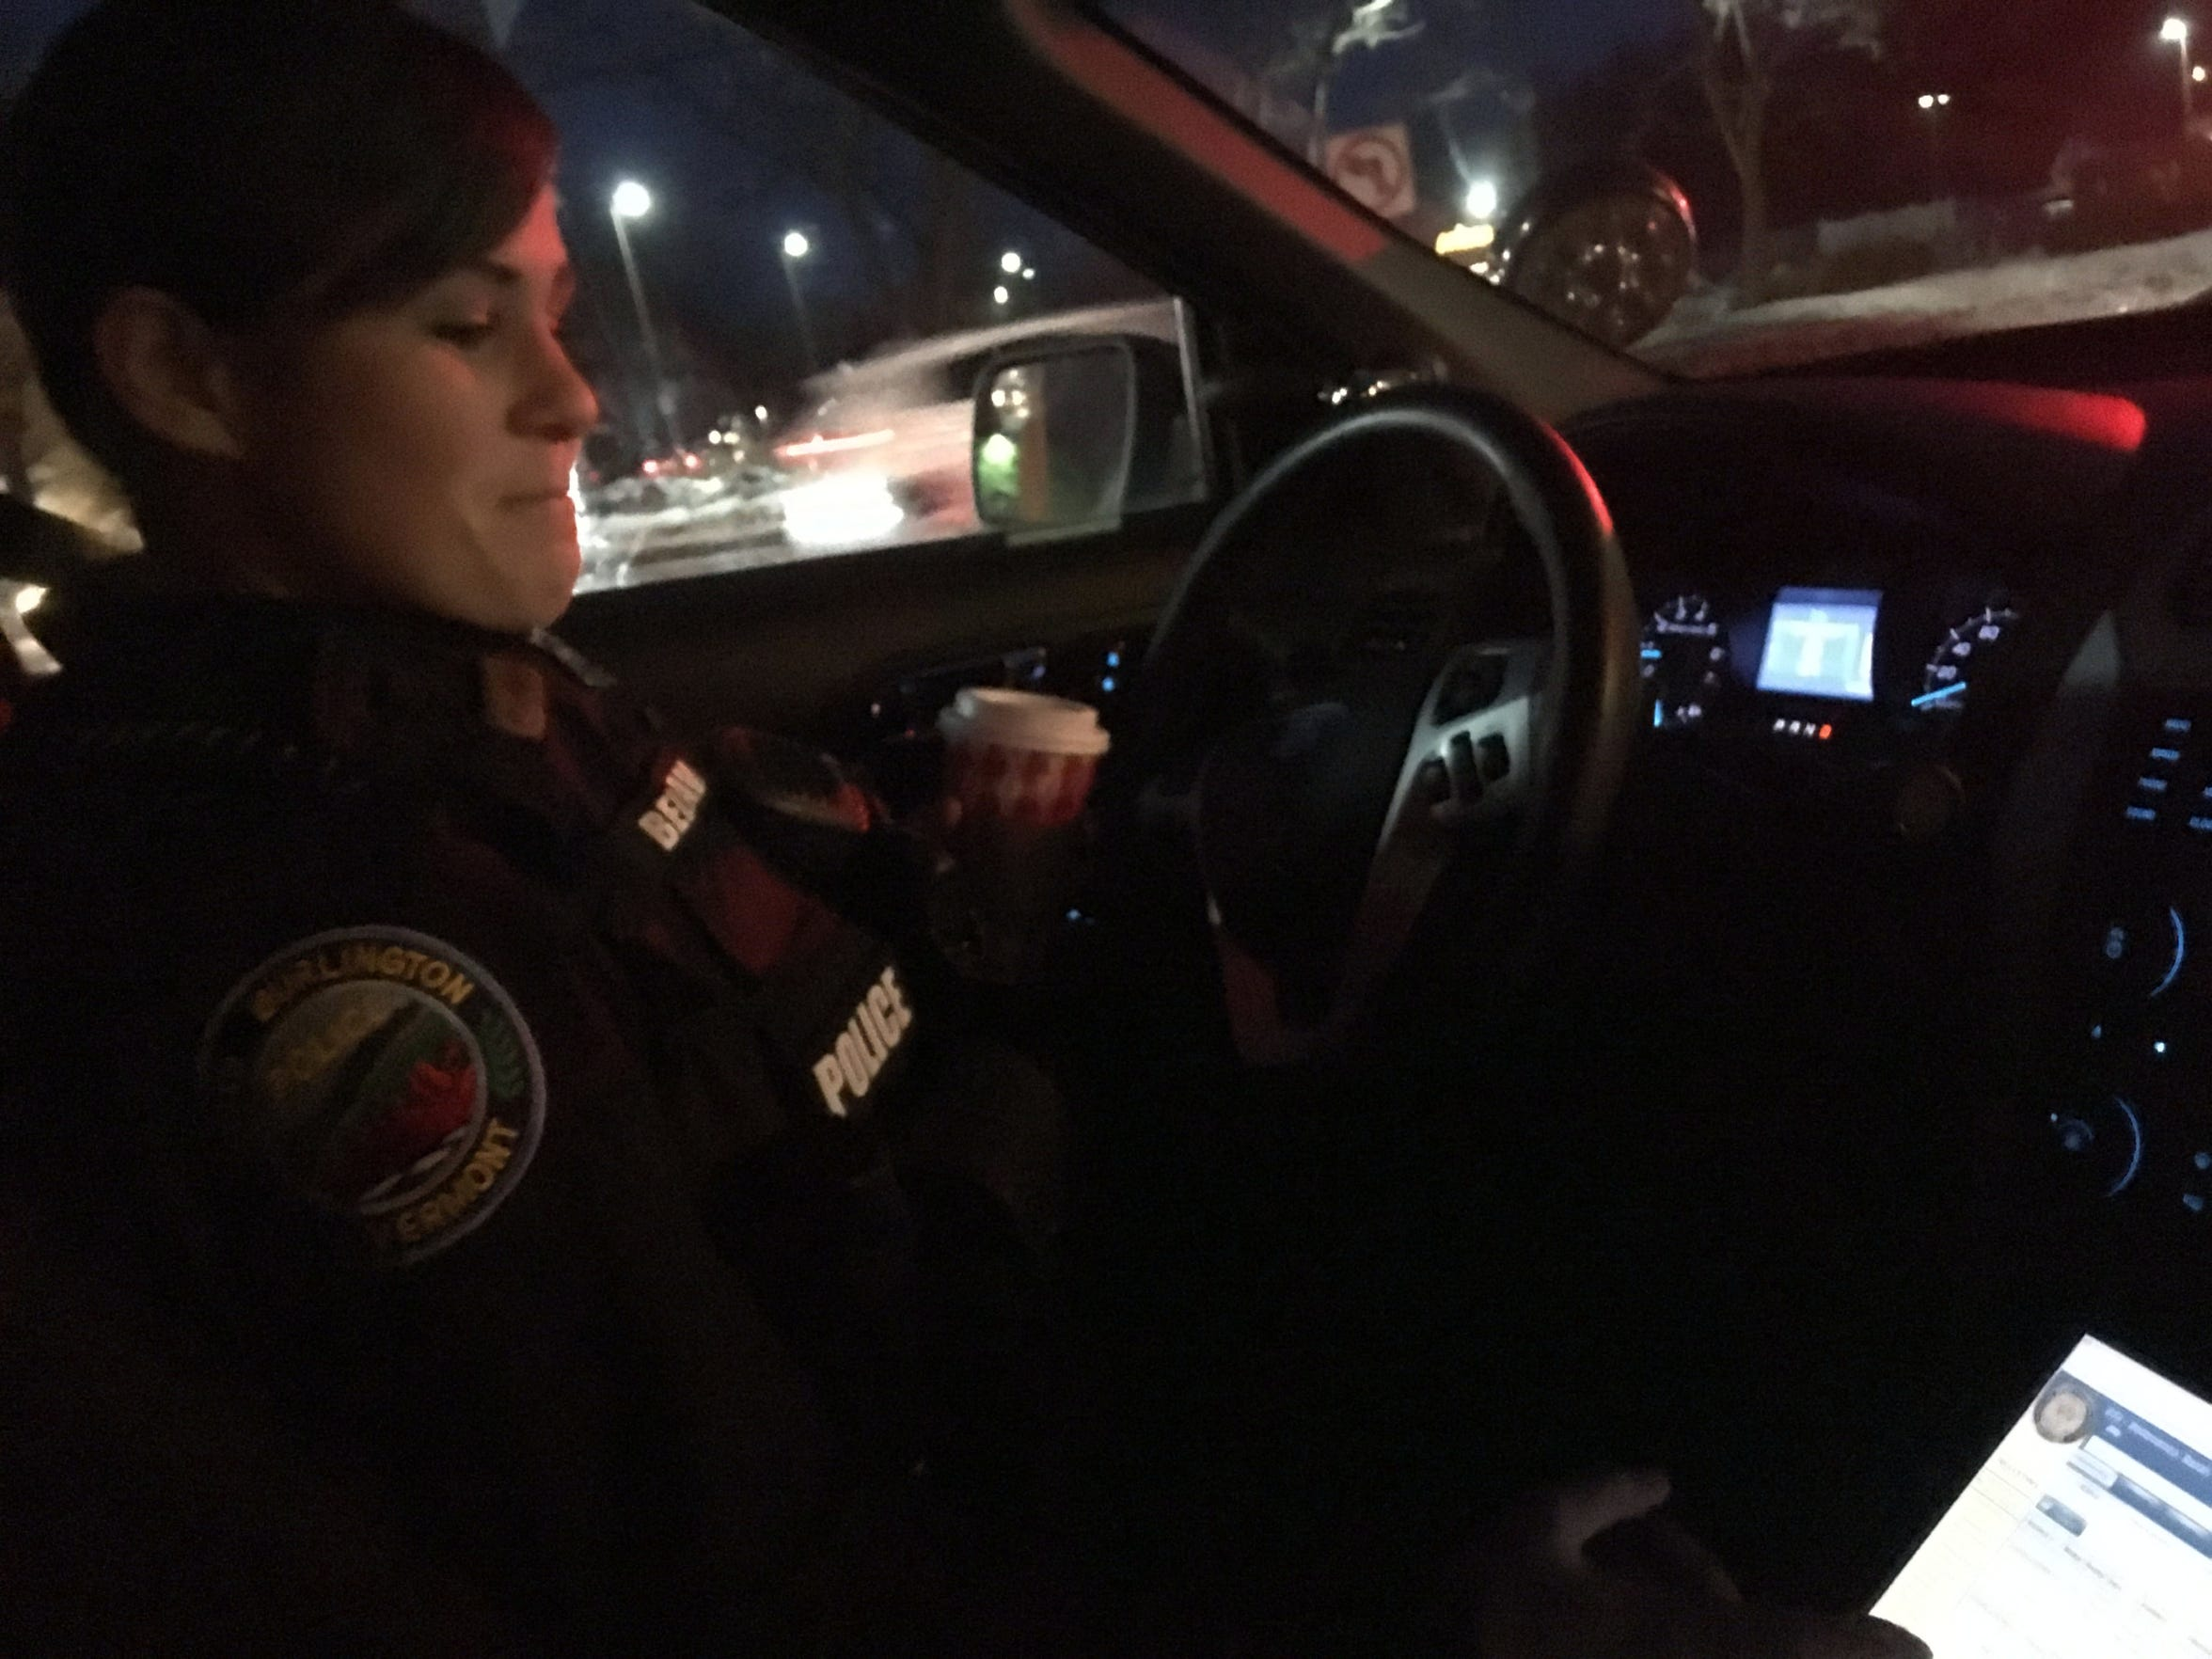 While stopped in a parking lot, South Burlington Police Officer Sarah Bellavance checks Valcour to see which incidents were open and which area she was assigned to patrol on Dec. 6, 2018.